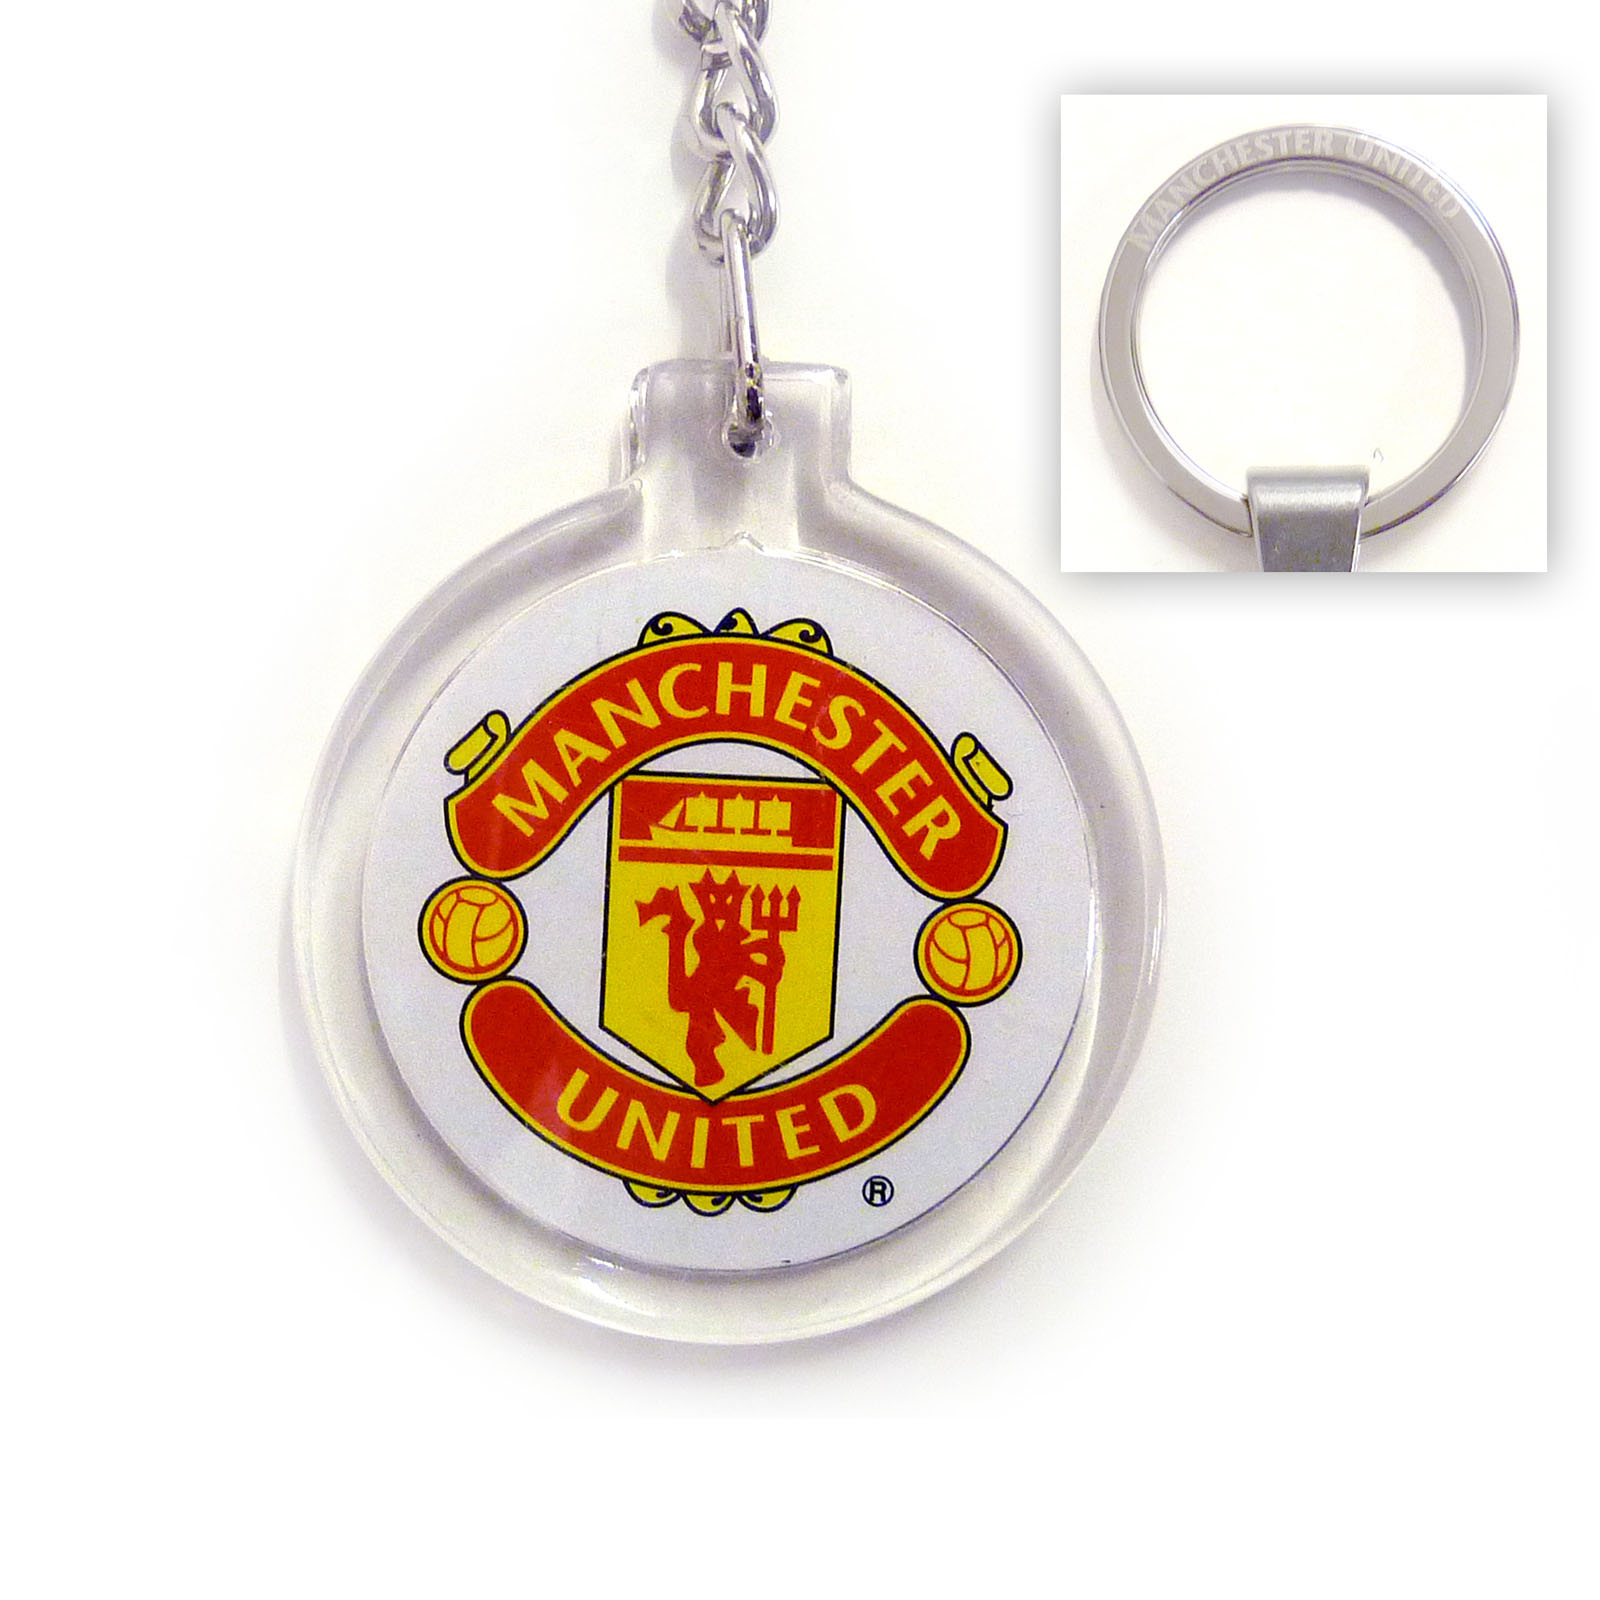 Details About Manchester United Football Club Official Soccer Gift Acrylic Crest Keyring